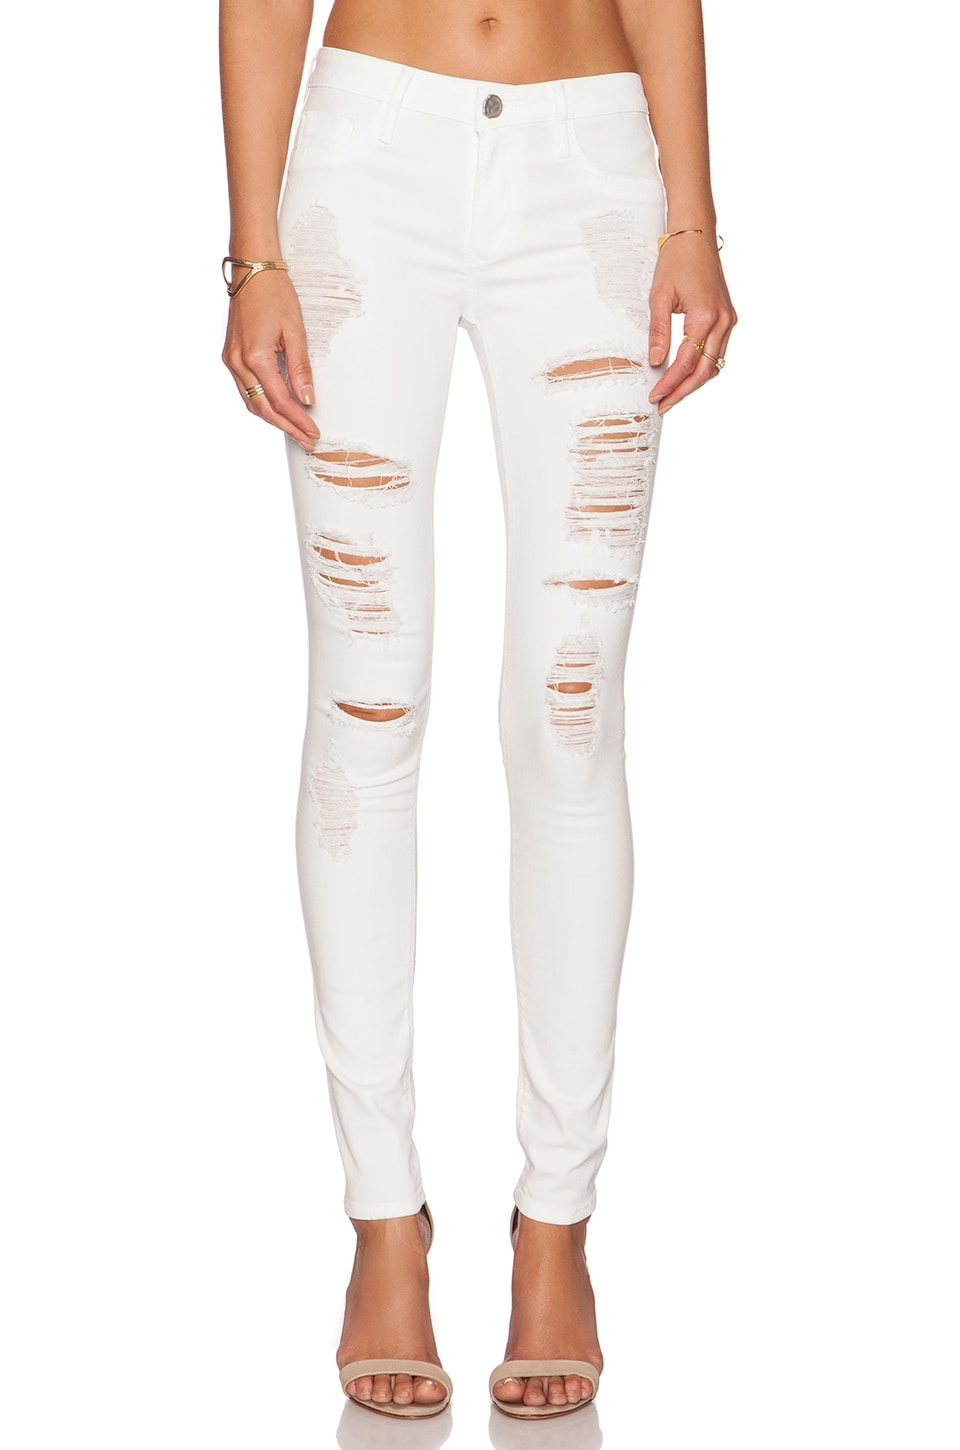 Black Orchid Jude Mid Rise Super Skinny in Snow Storm